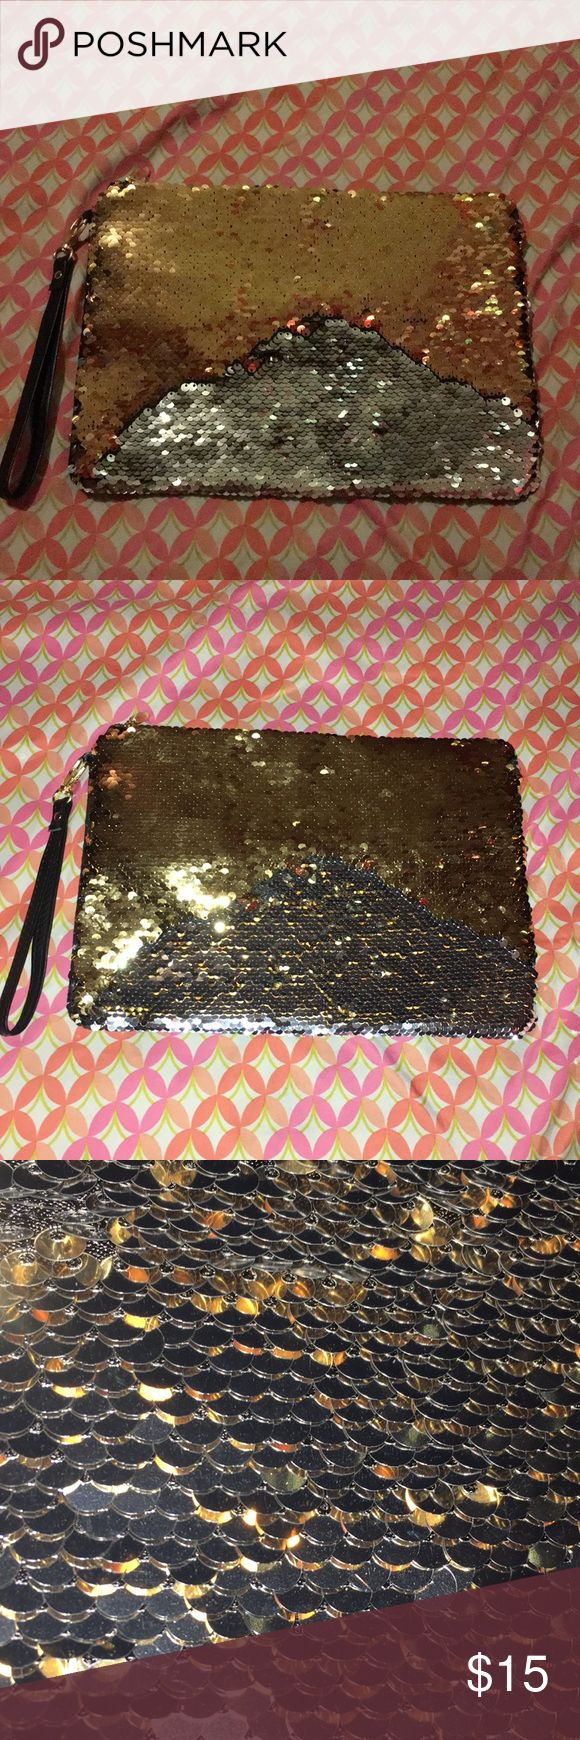 sequin clutch NWT sequin clutch it changes when you swipe/wipe it forward it's silver and gold Bags Clutches & Wristlets